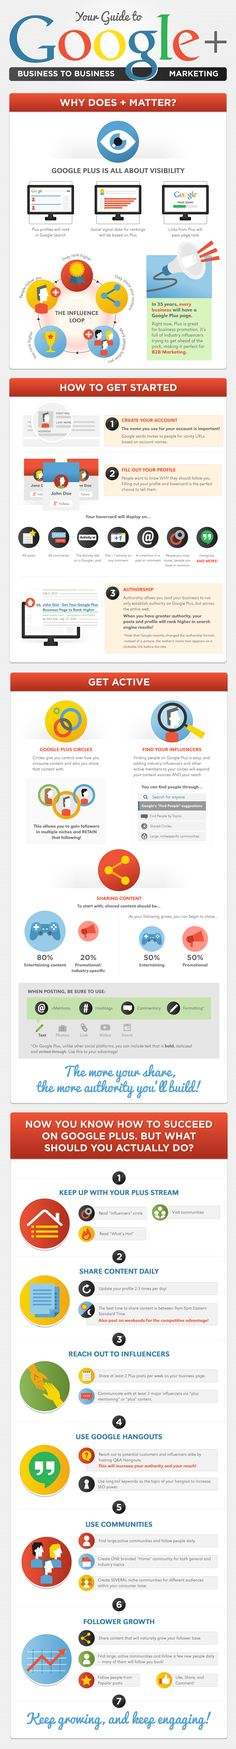 If Google+ is the right platform for you brand, check out these tips on how to get started.